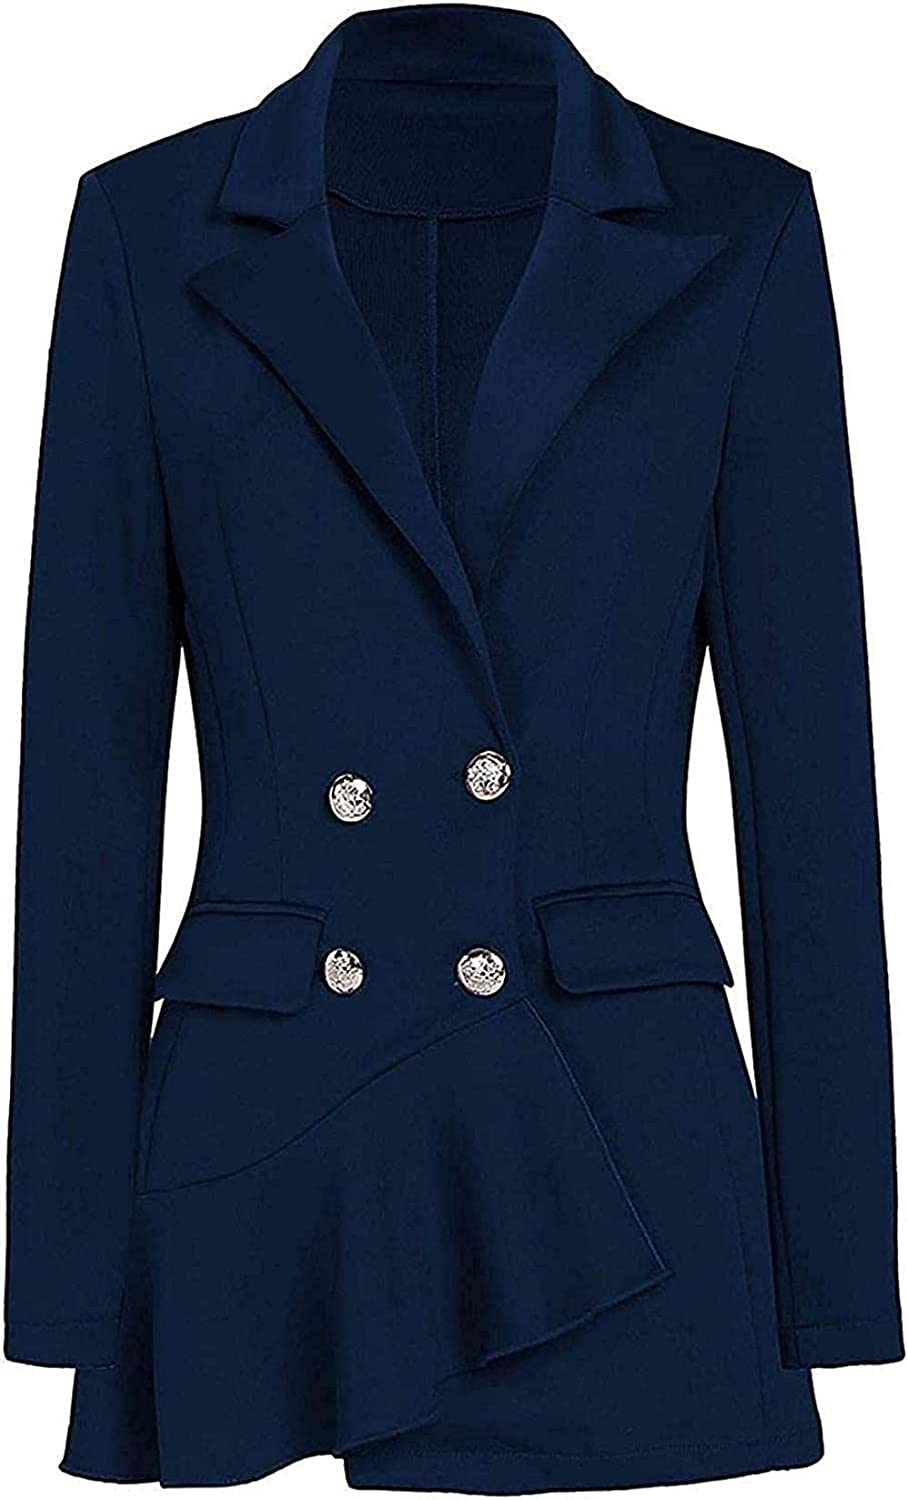 Women's Fashion Double-Breasted Slim latest Fit Business Suit Ja Blazer At the price